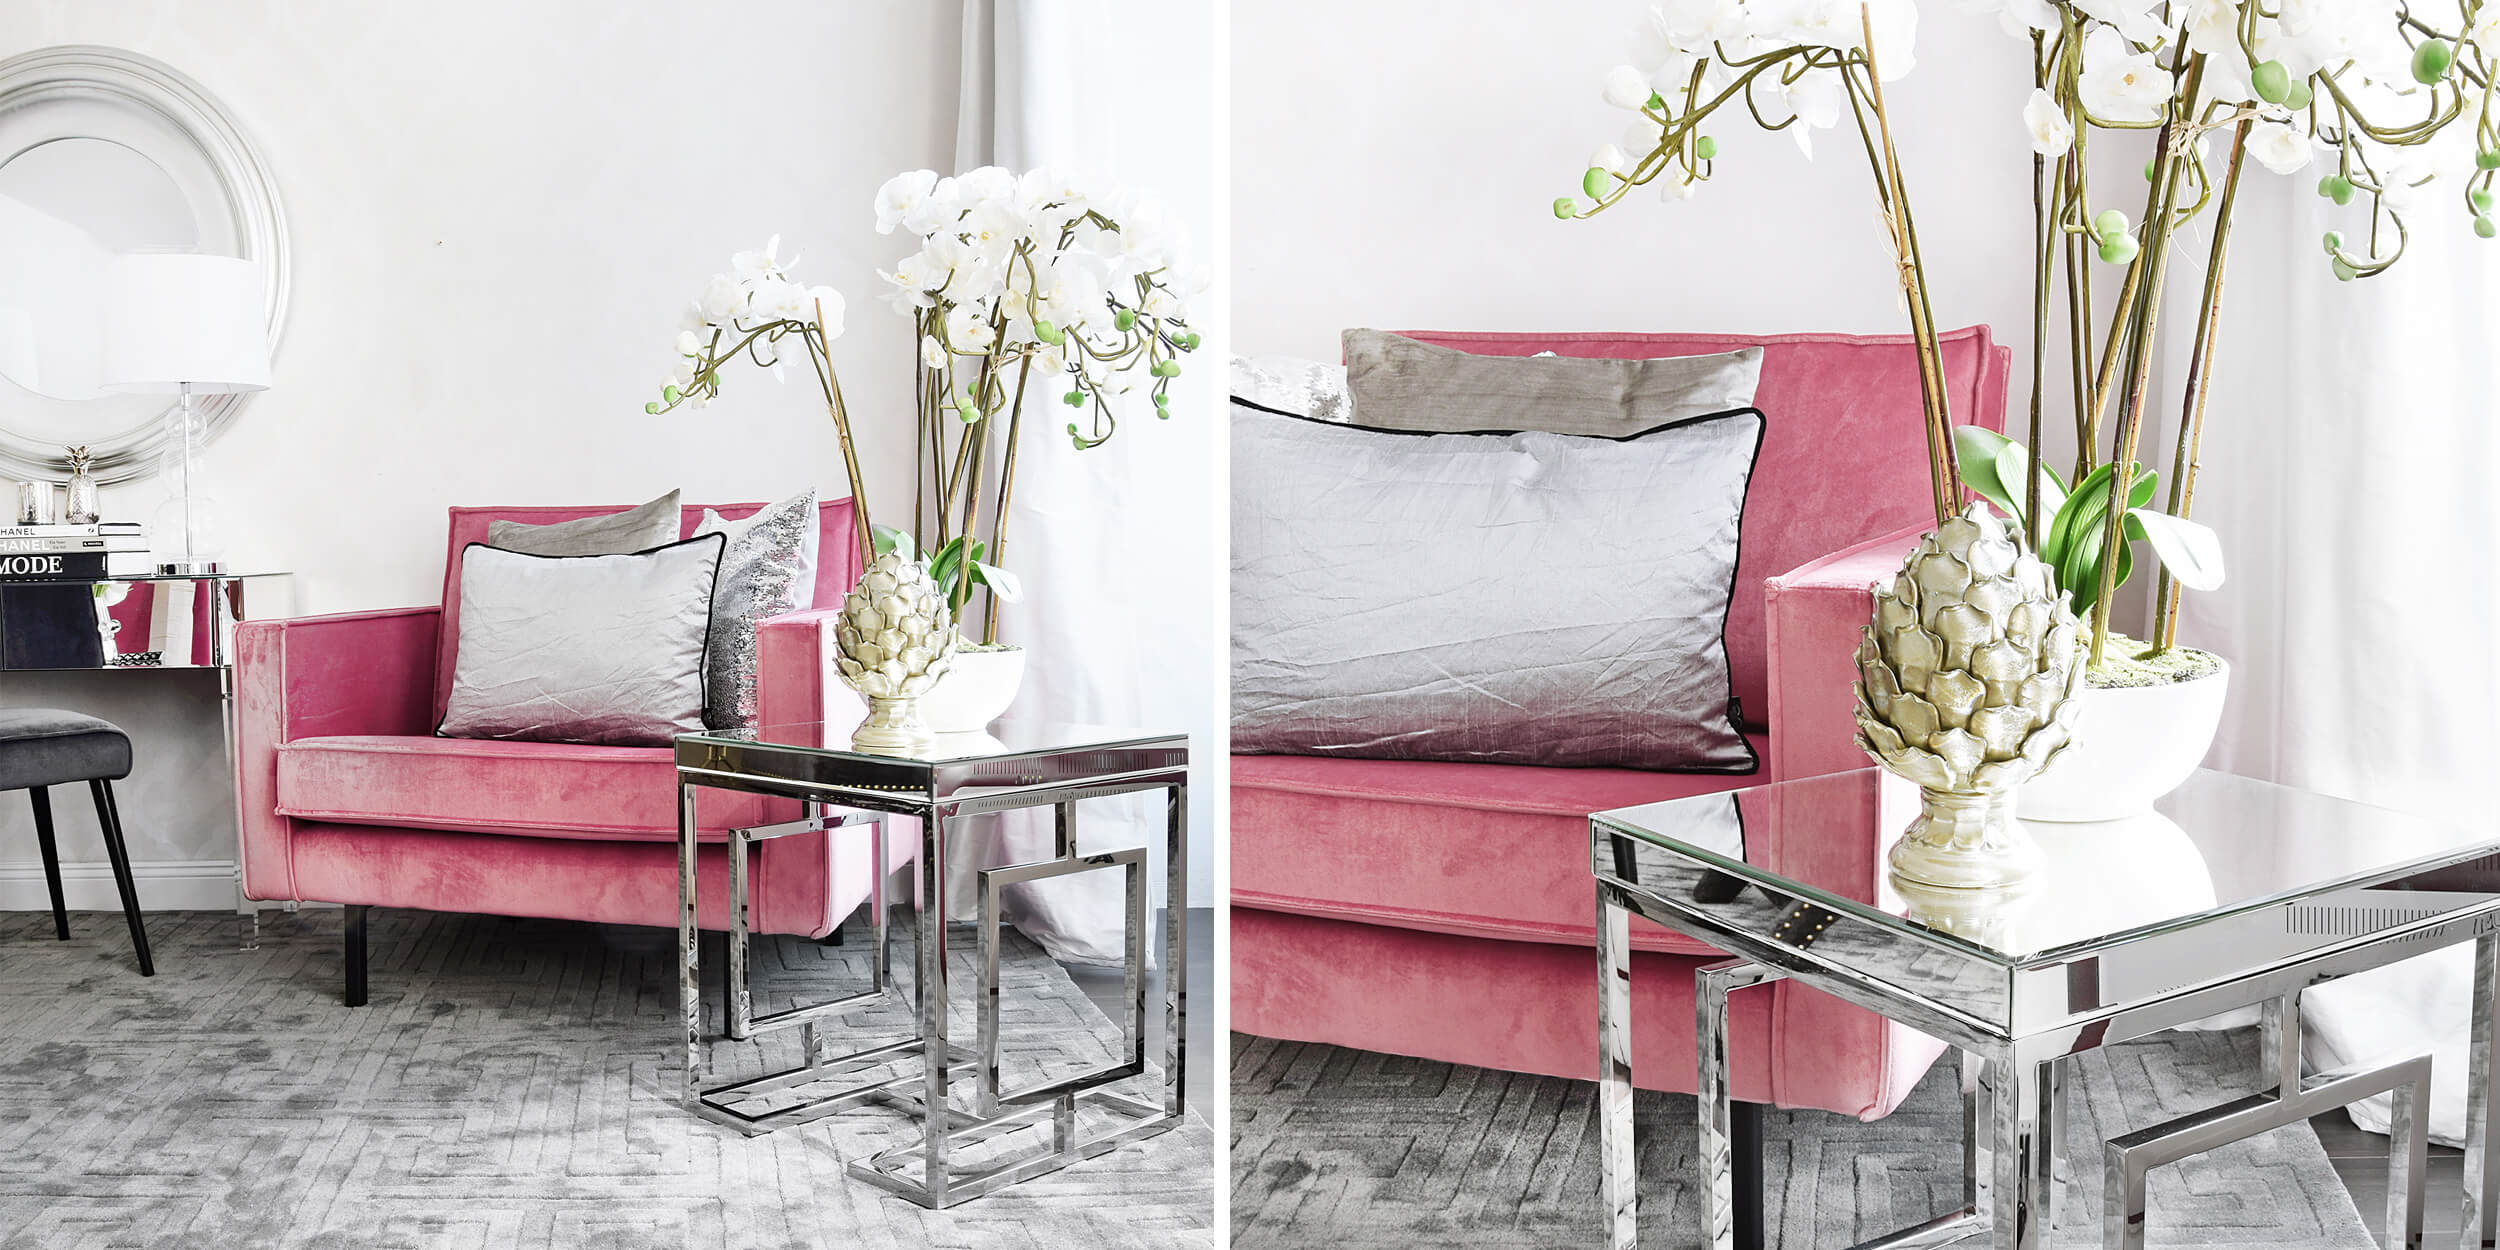 Fancy & Elegant! Flur-Look in Pink und Grau